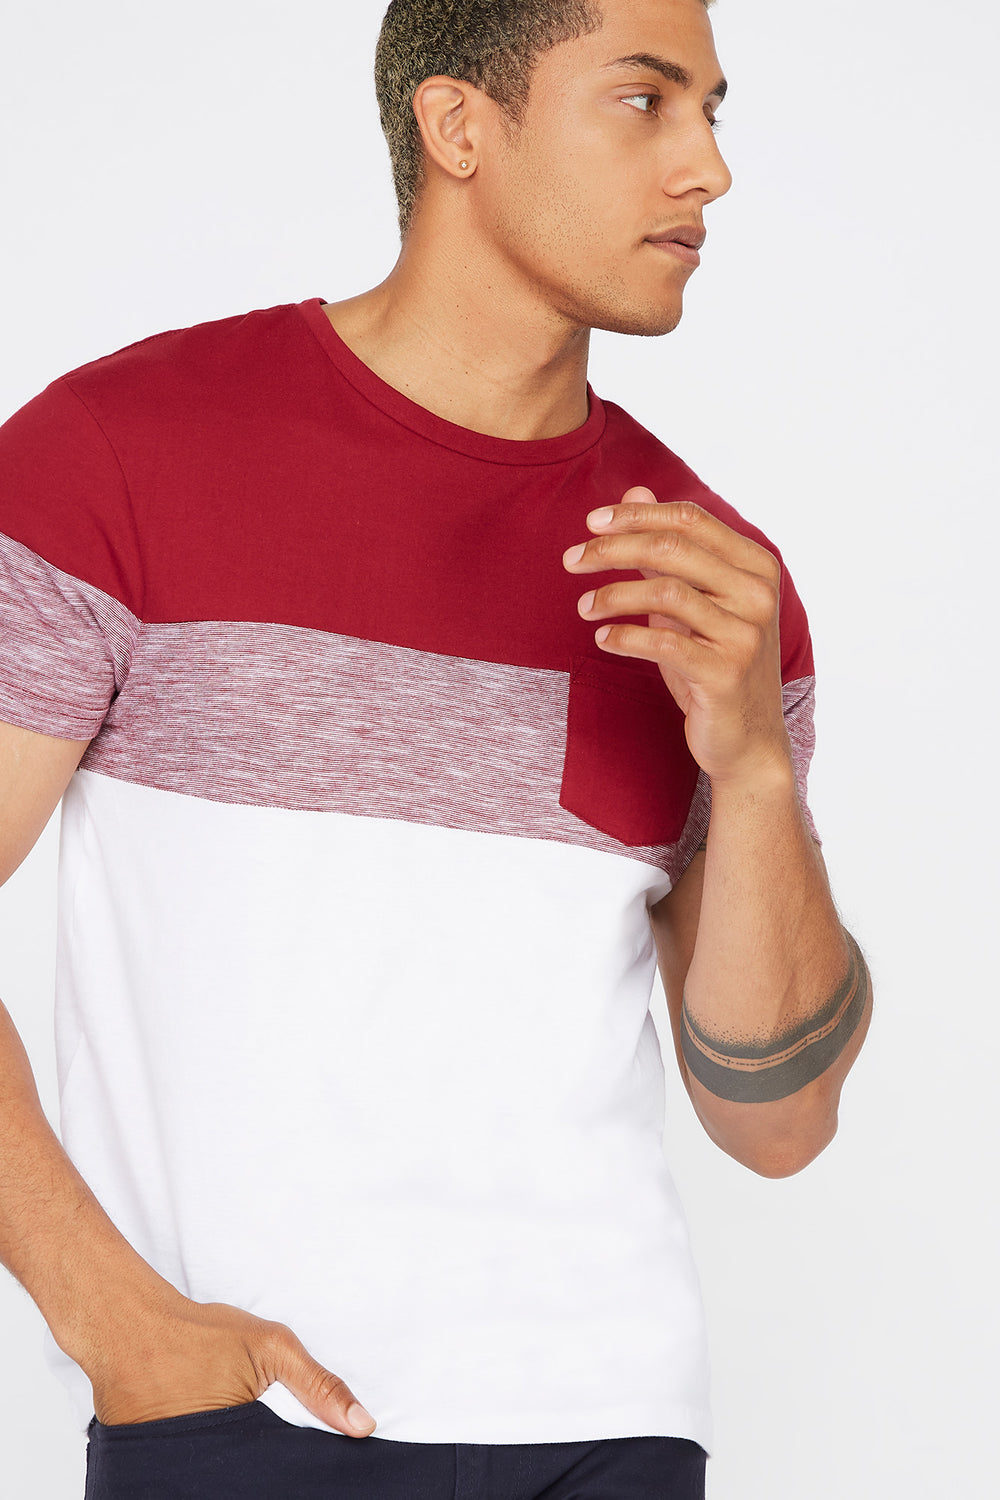 Colour Block Patch Pocket T-Shirt Red